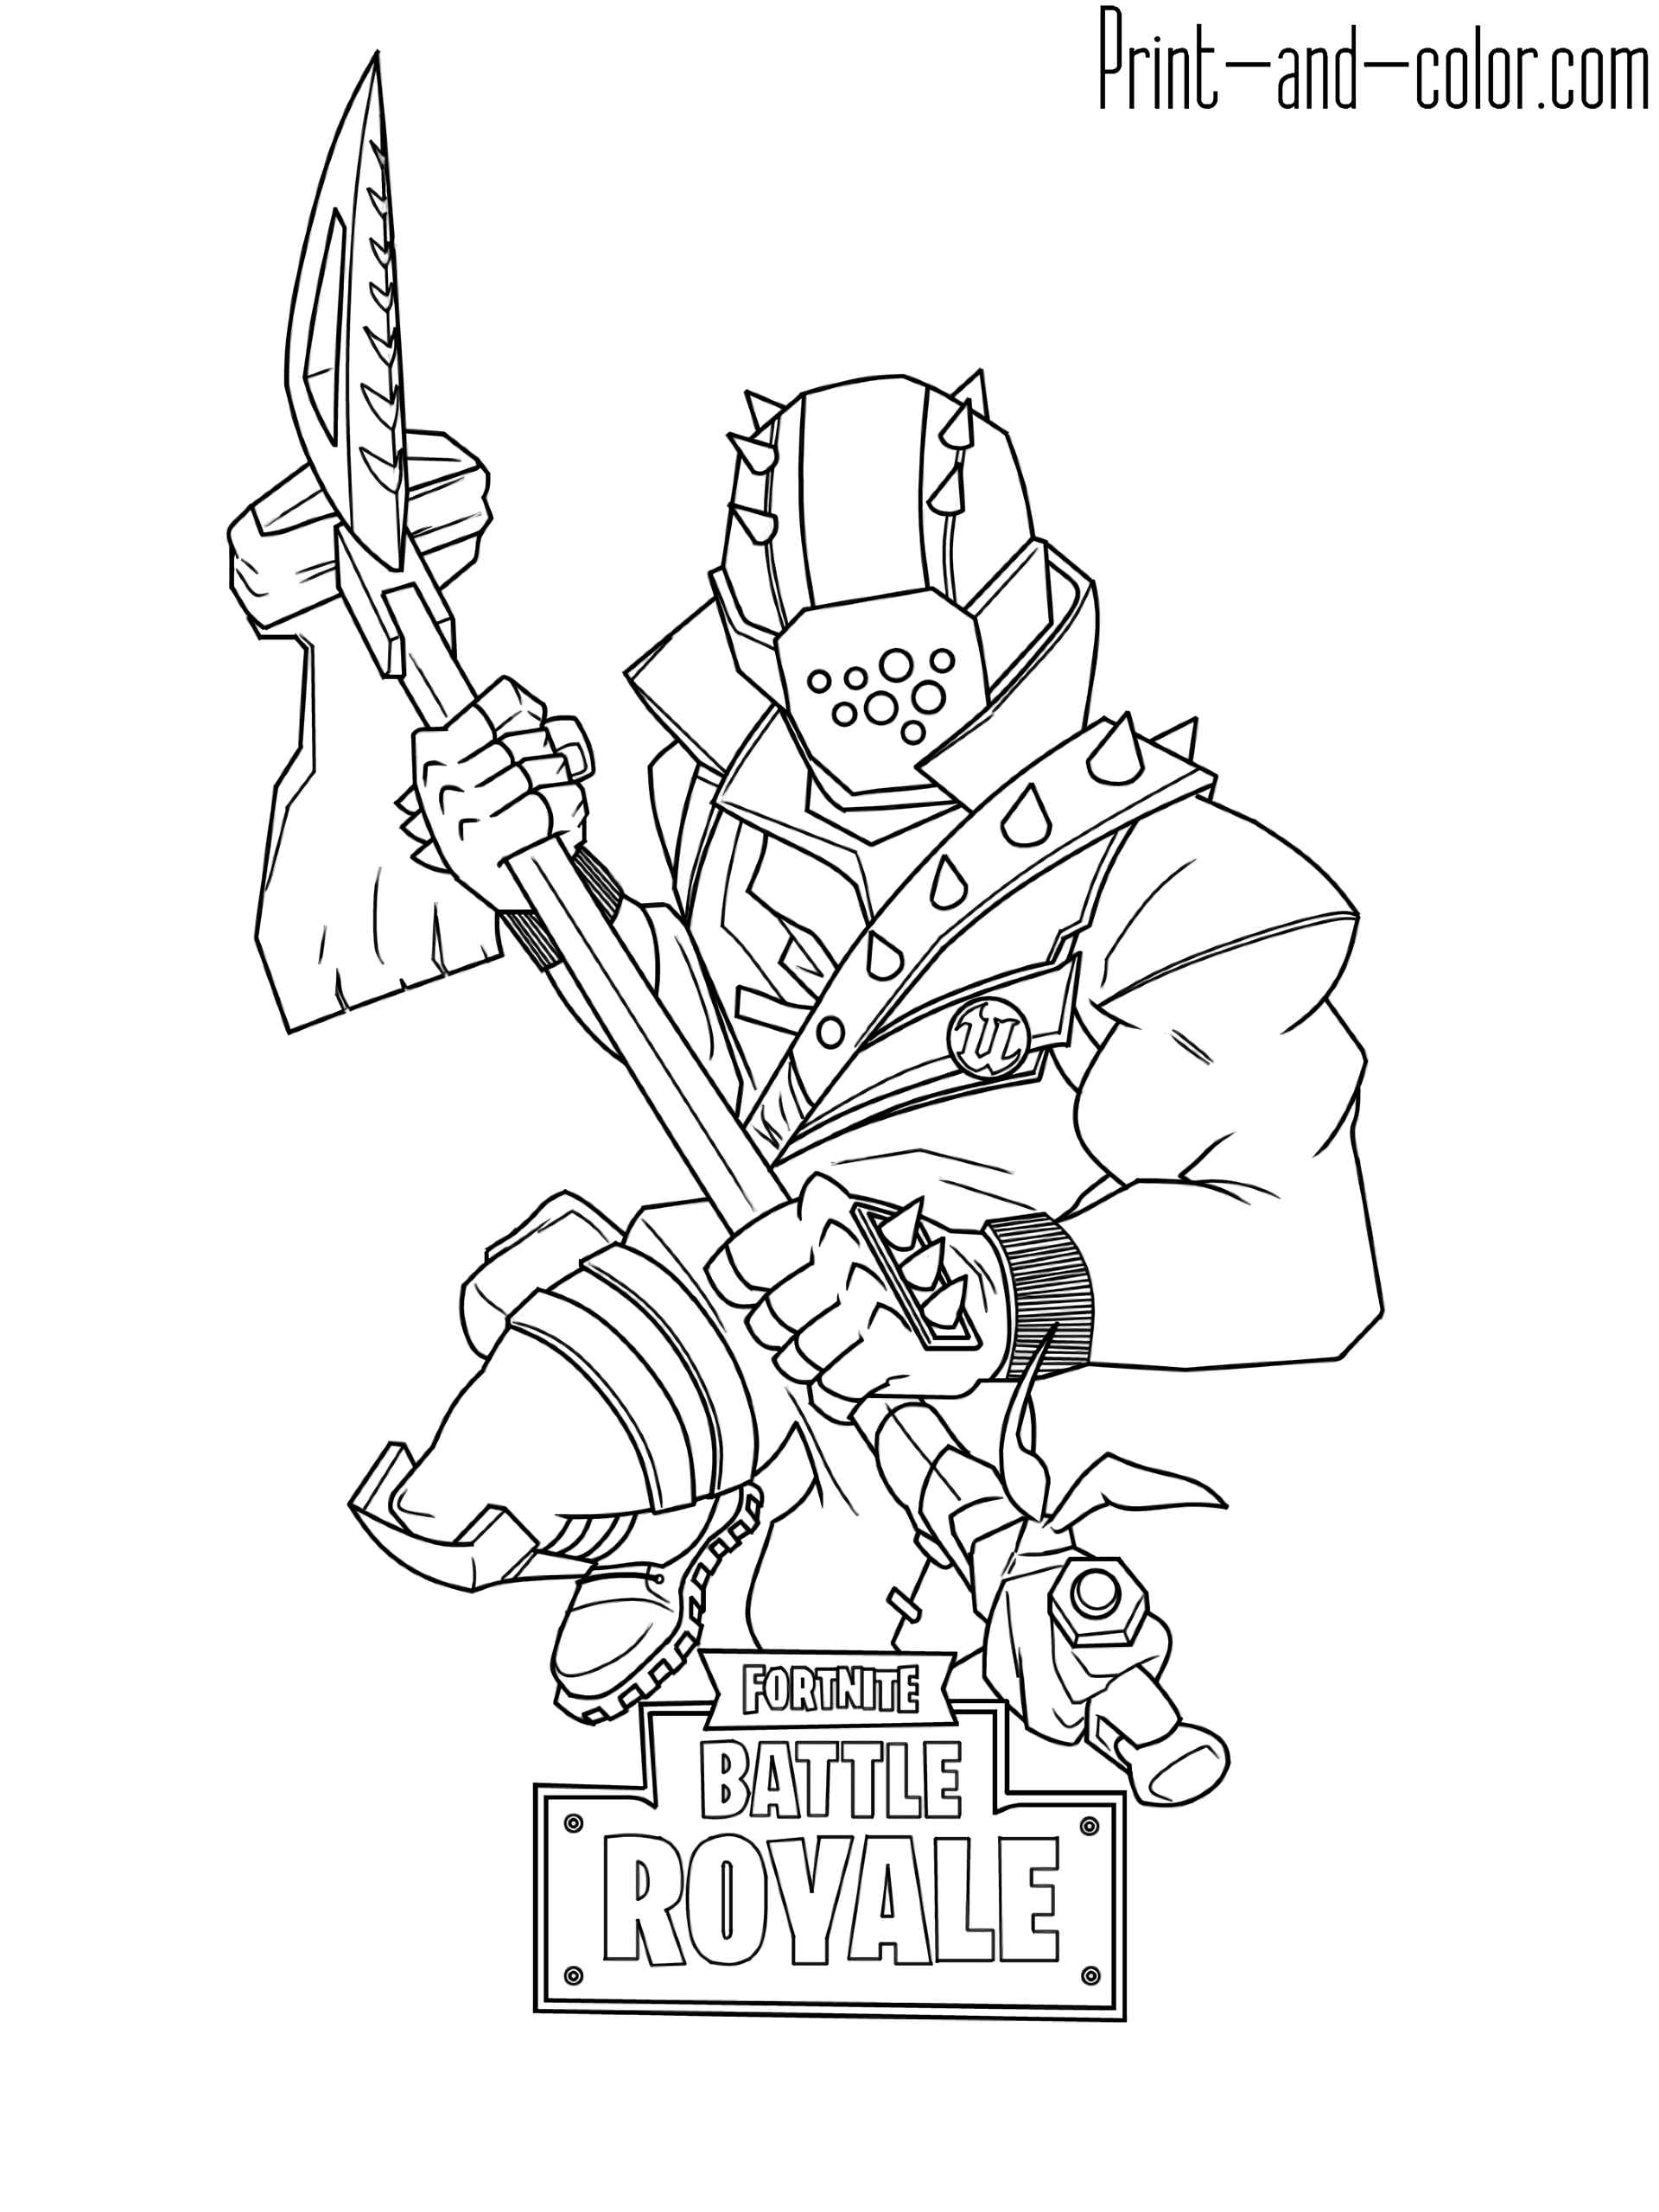 Brite Bomber Fortnite Girl Skins Coloring Pages Bride Bomber Skin From The Game Fortnite Coloring Page To Print And Download